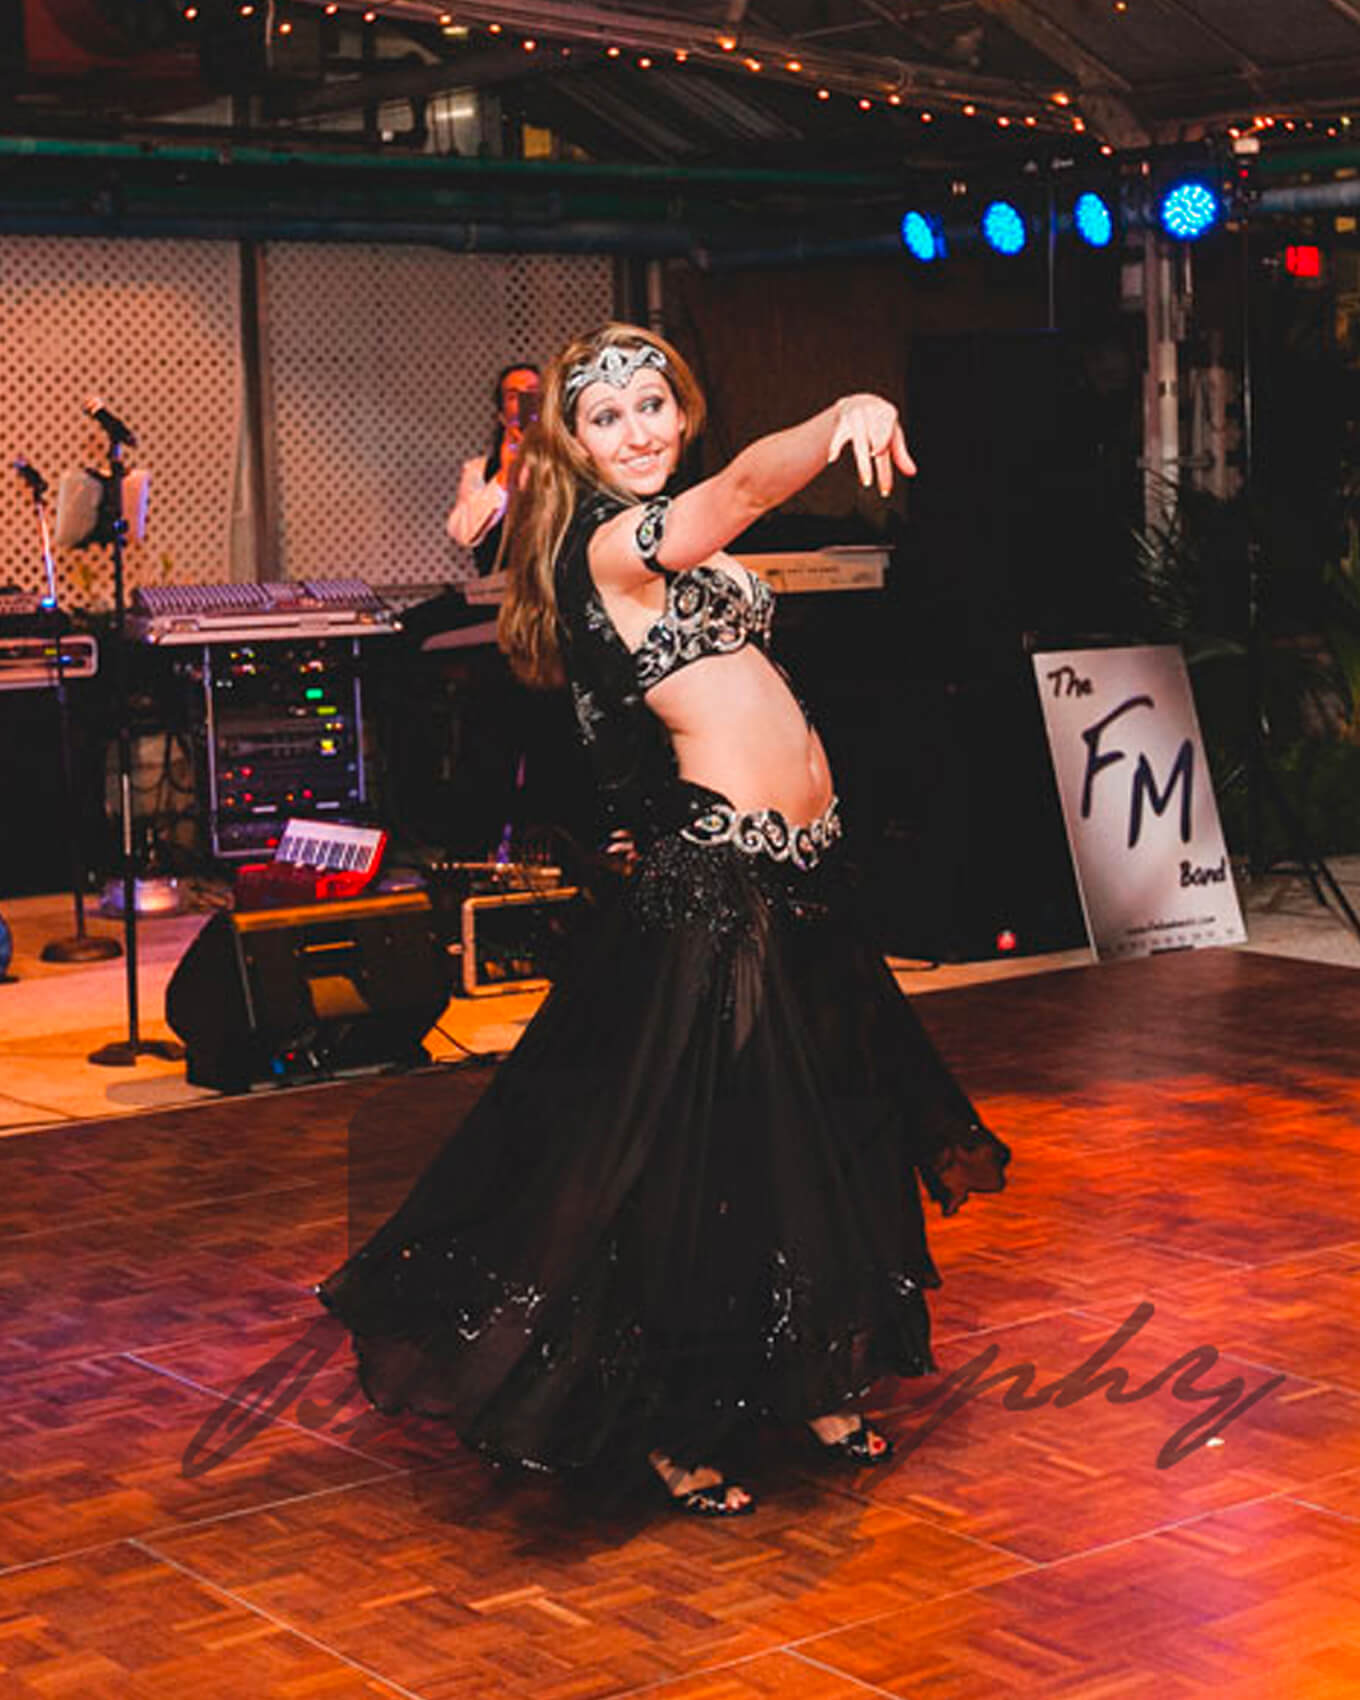 Donna performs a live belly dancing show at an event